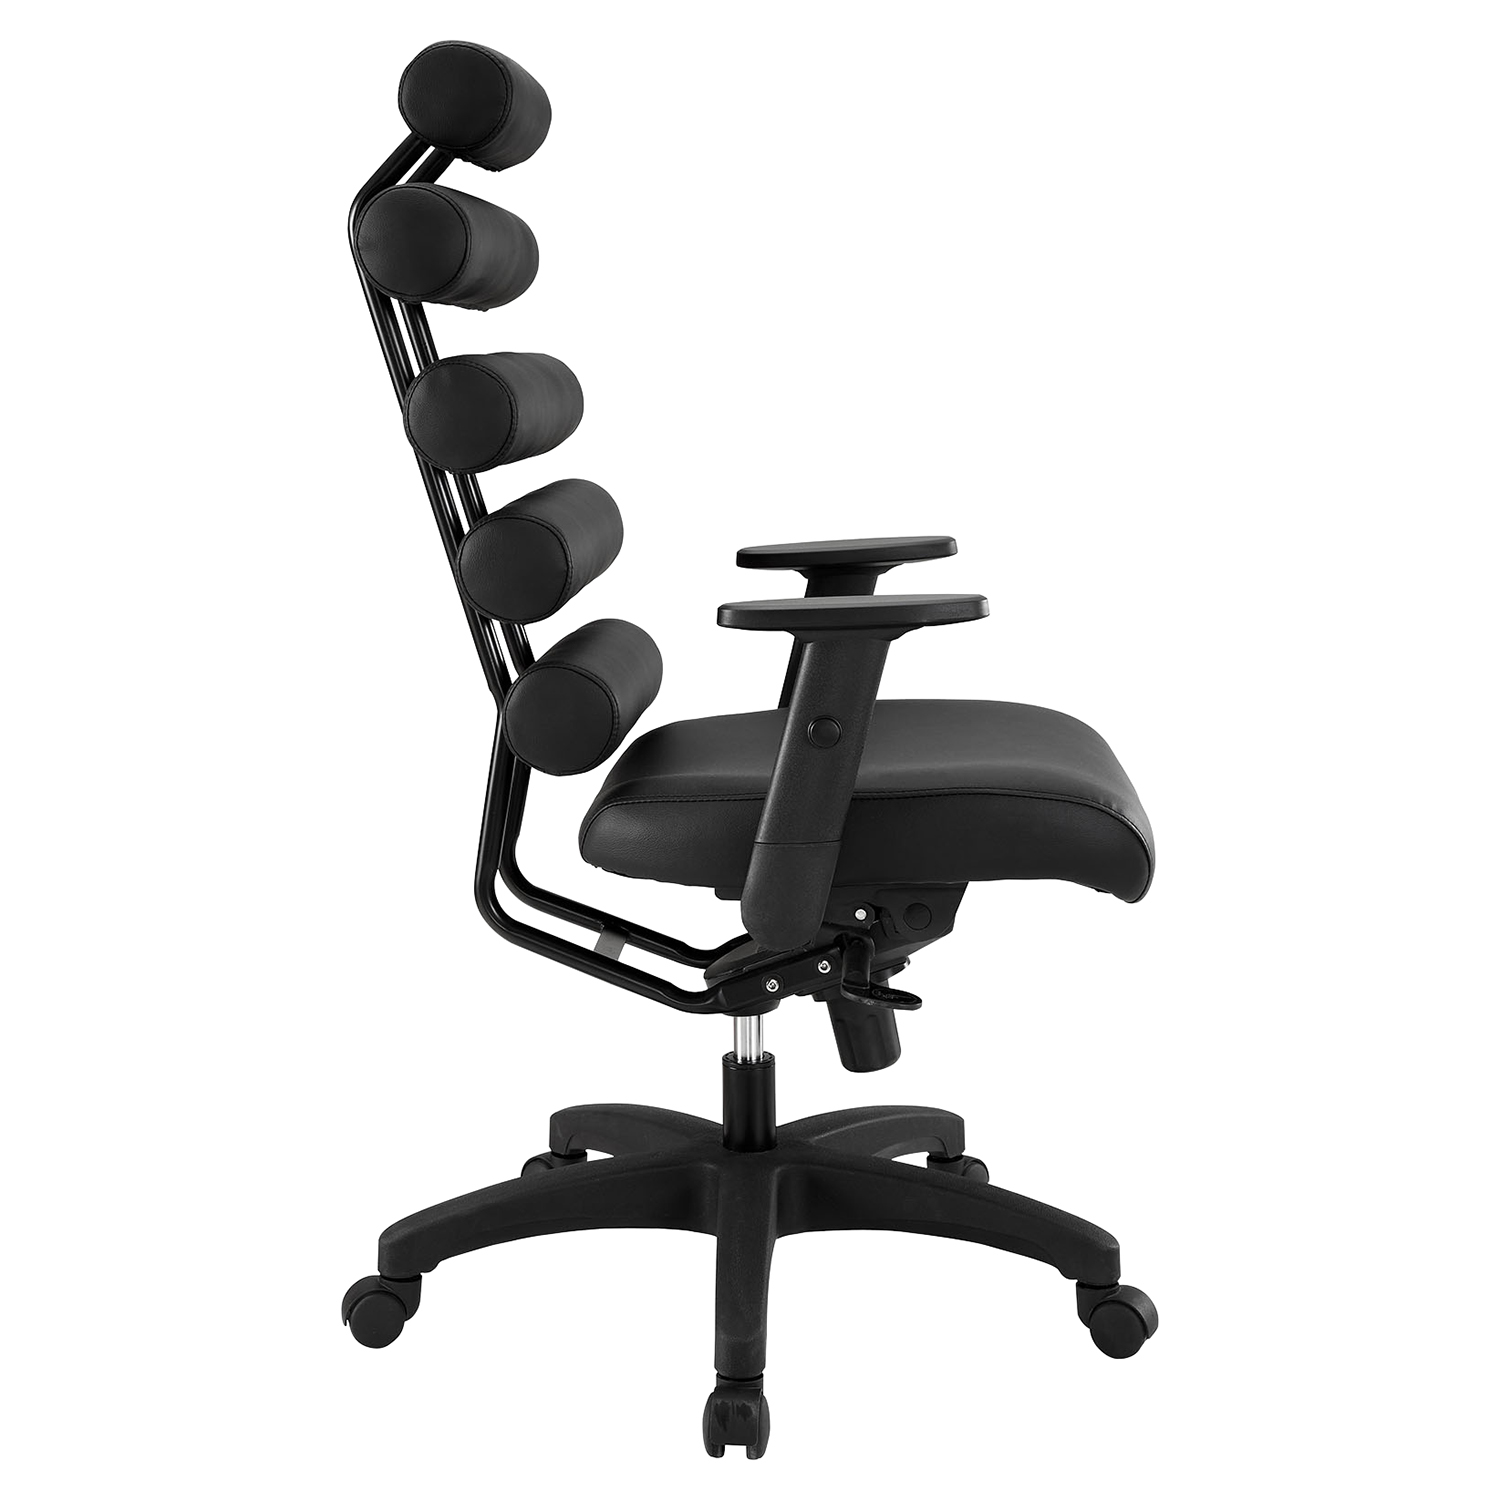 Pillow Faux Leather Office Chair - Height Adjustable, Black - EEI-274-BLK